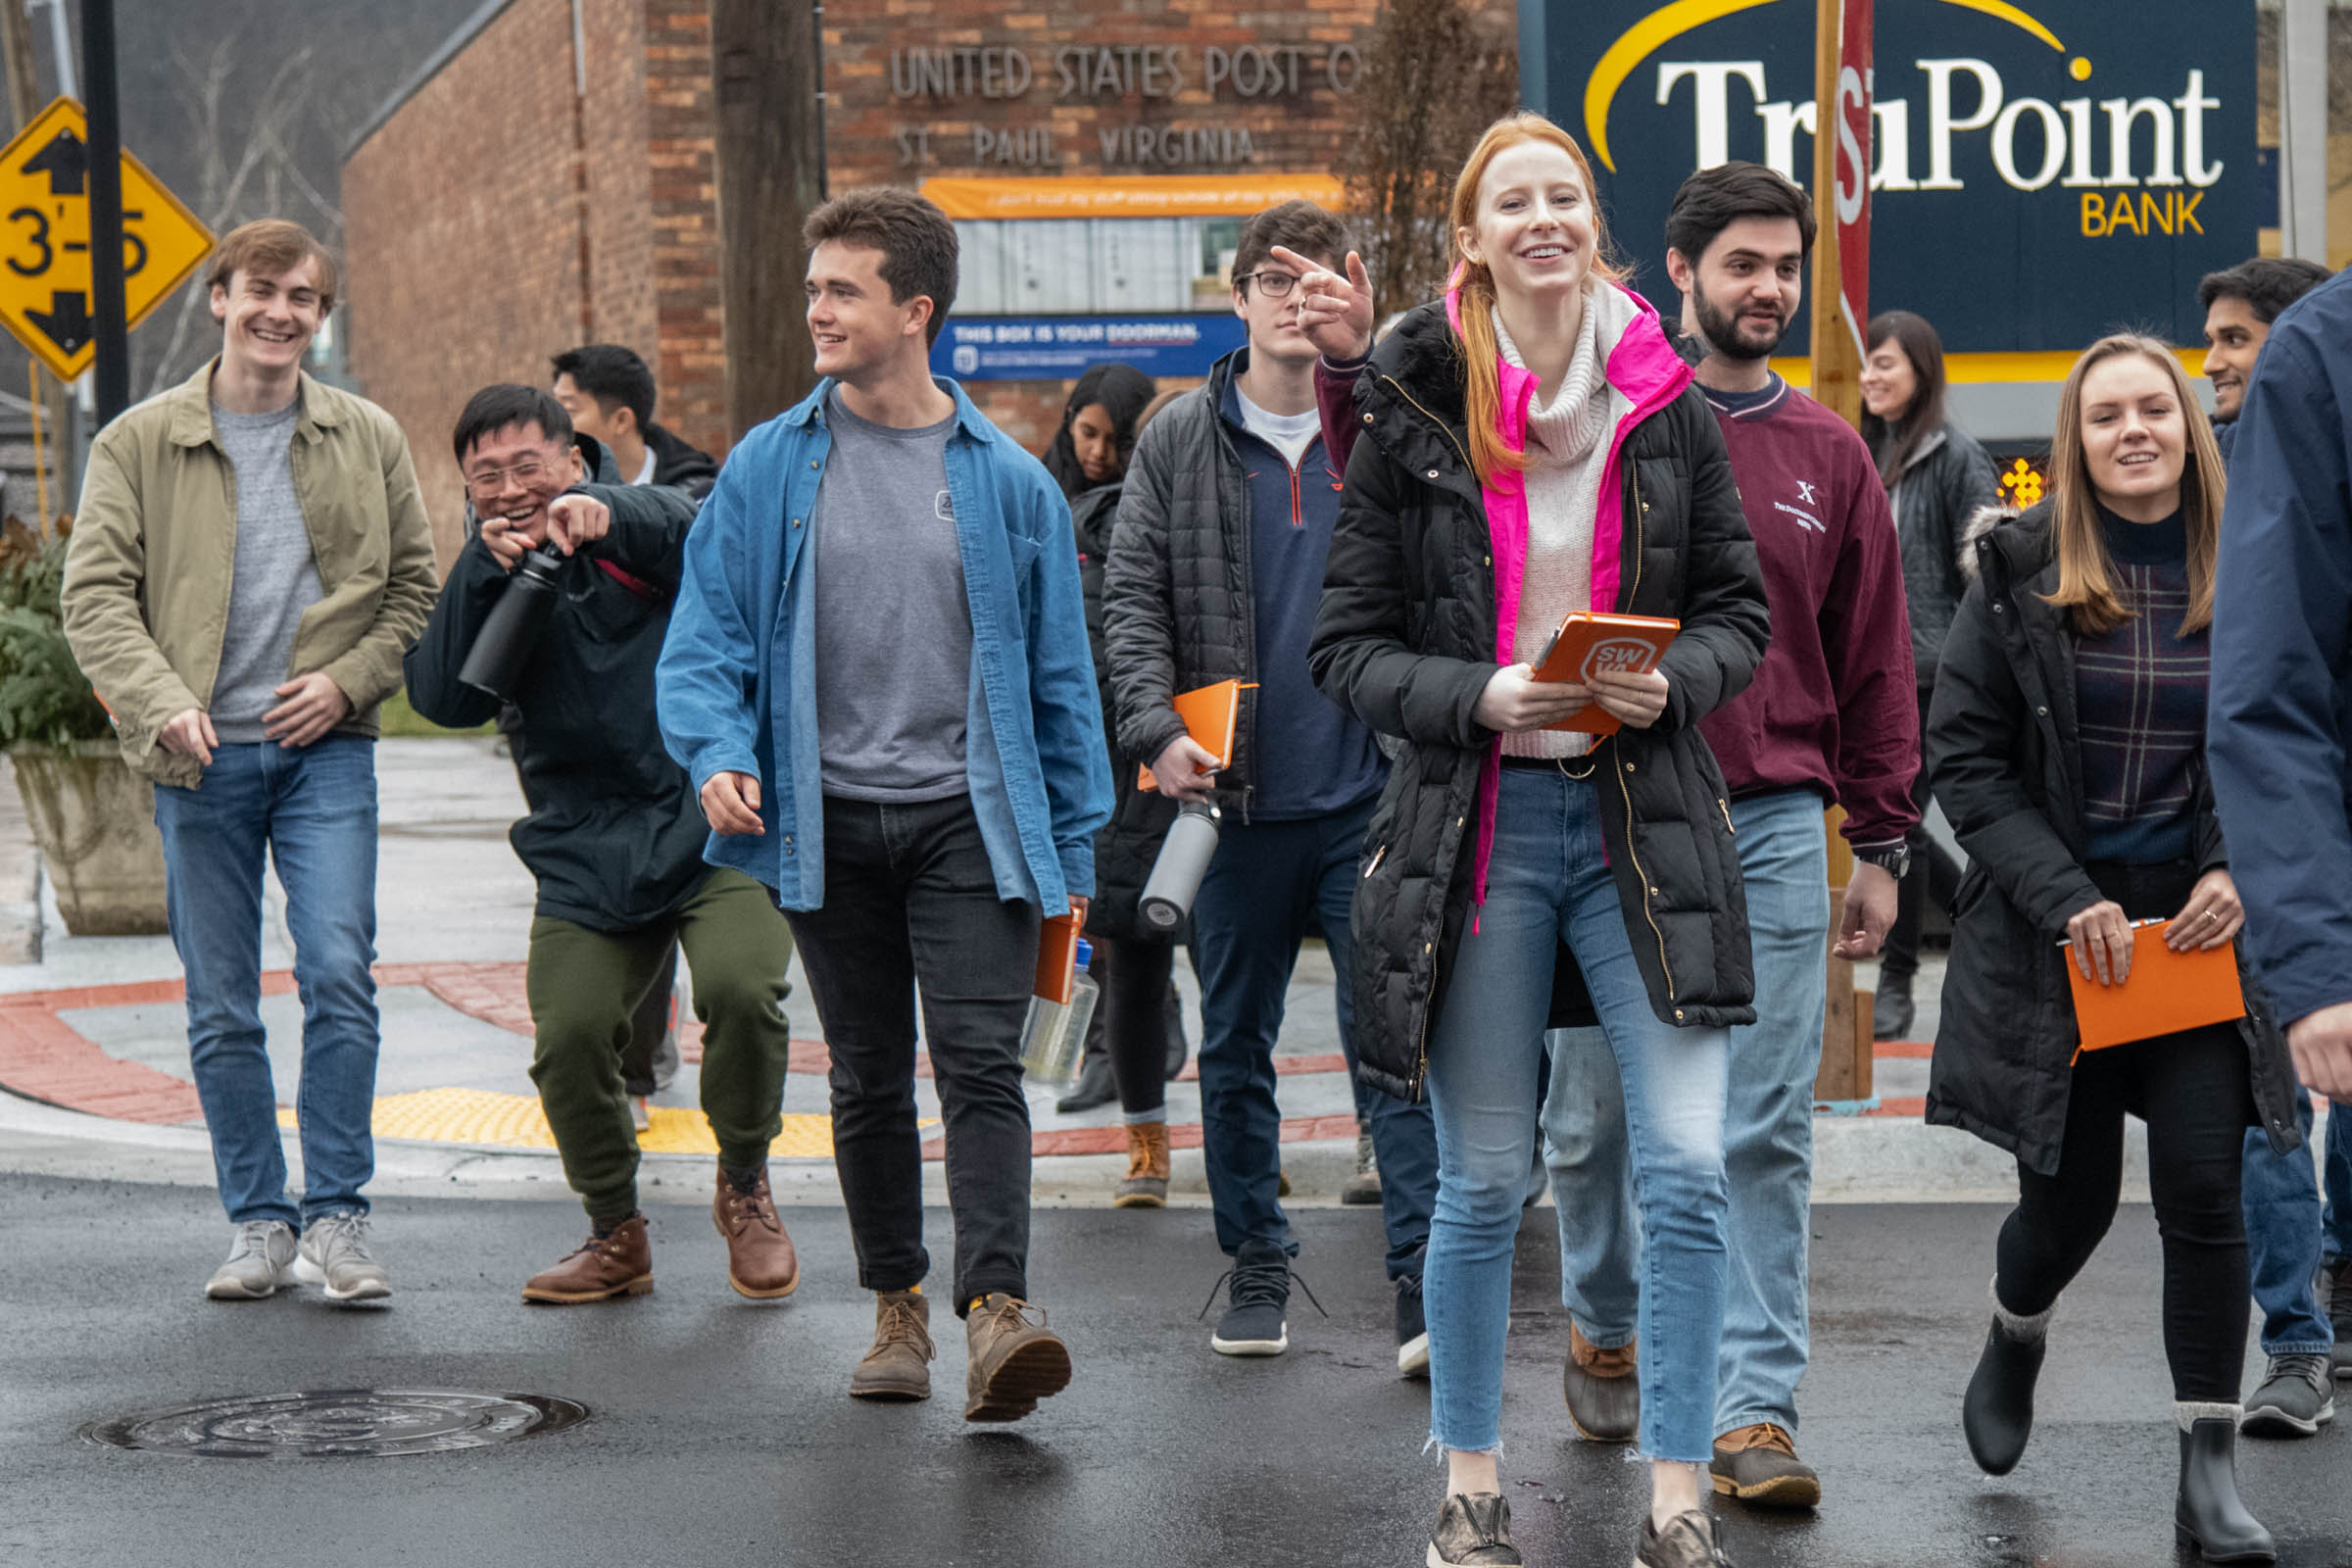 Students in Mahoney's J-Term class walk in downtown St. Paul, Virginia. Behind them is the newly opened Western Front Hotel, which was a historic building restored through impact investing.